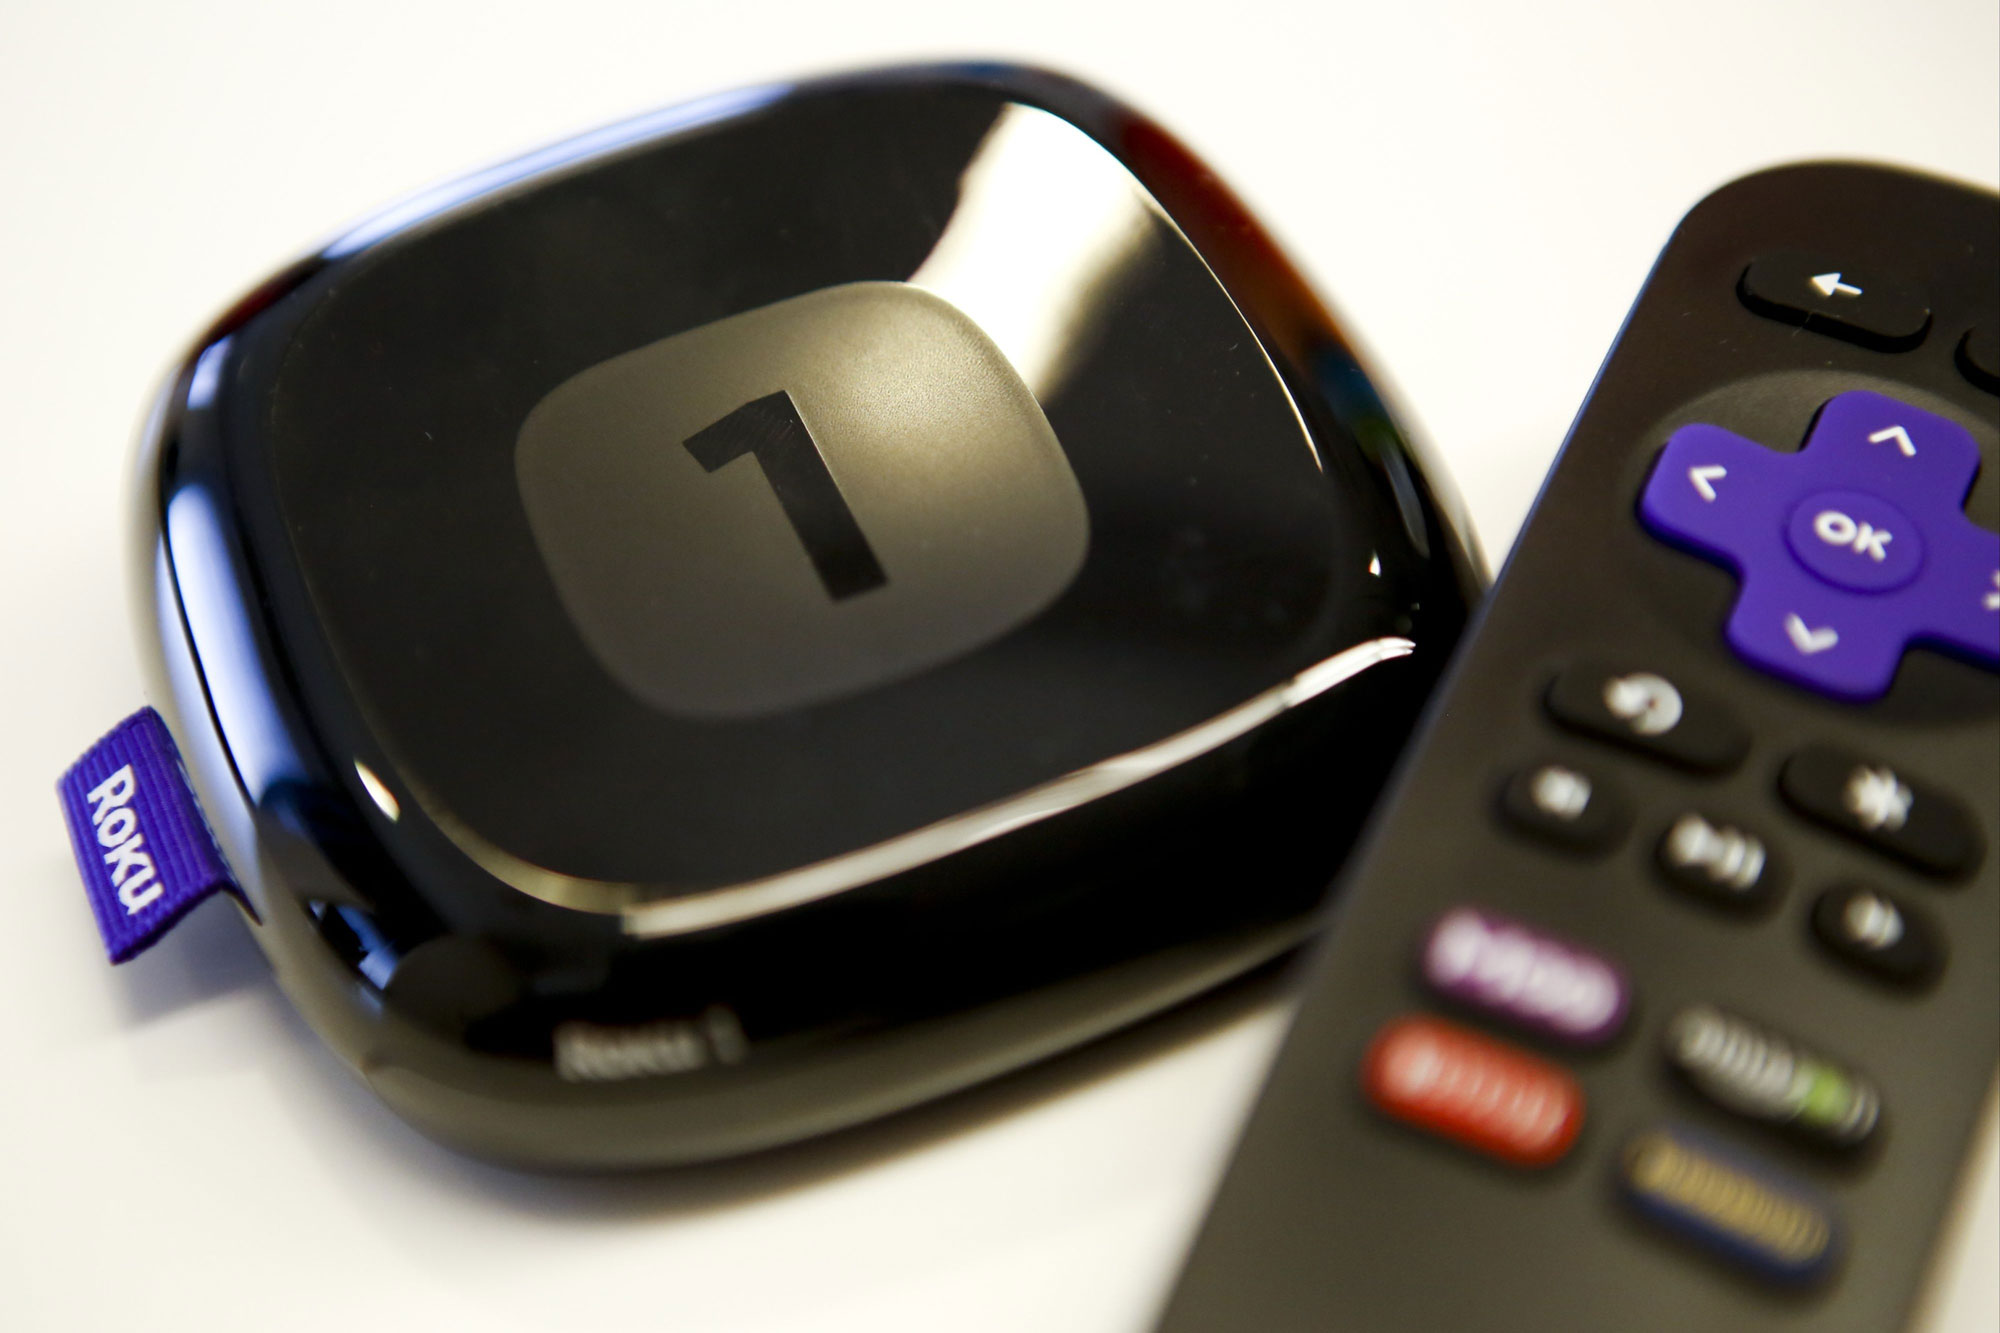 Roku sinks after saying CFO plans to step down